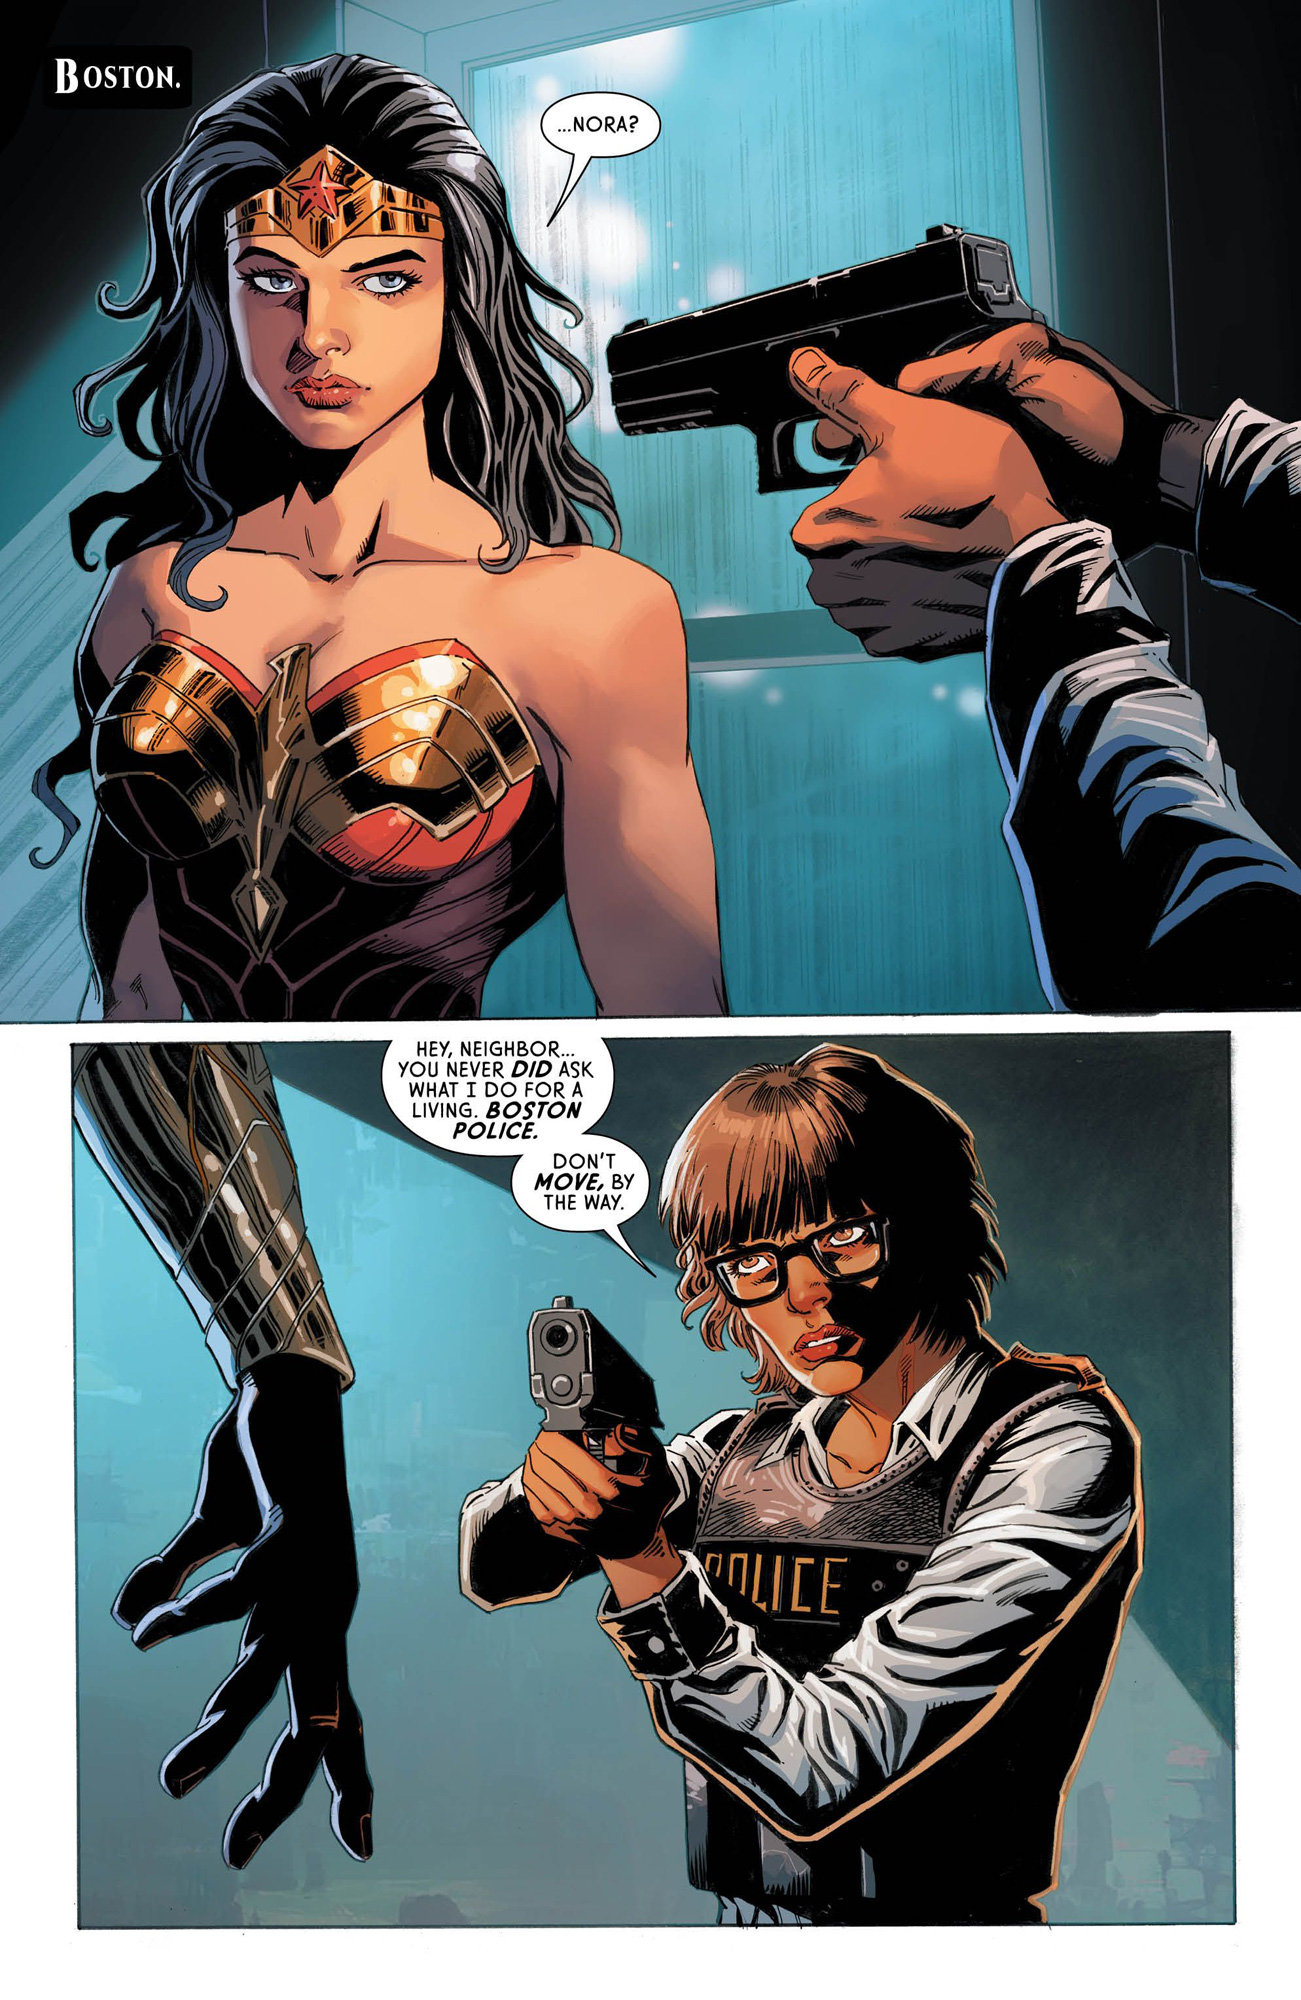 Wonder Woman #751 - 6-Page Preview and Covers released by ...